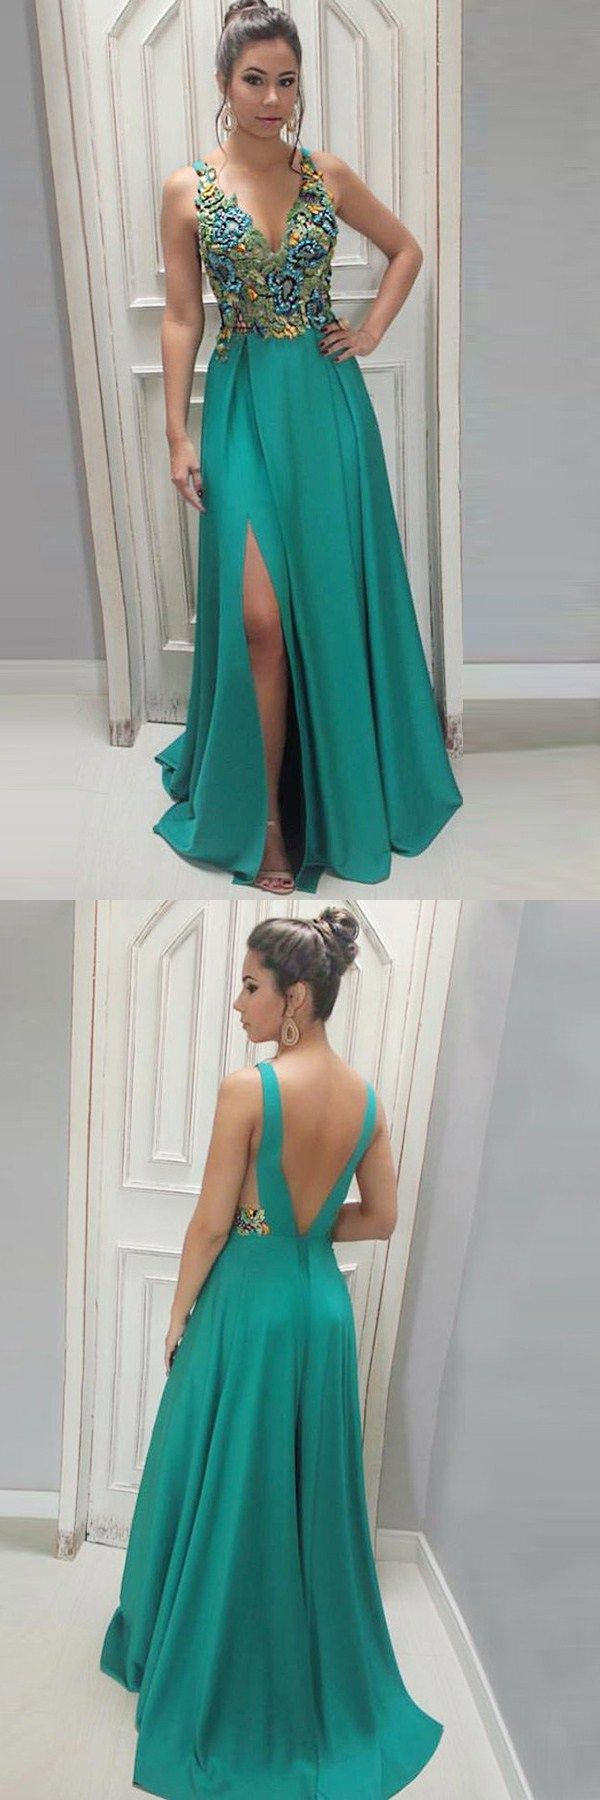 elegant hunter prom party dresses with beaded backless, fashion formal evening  gowns for special occasion, #eveninggowns